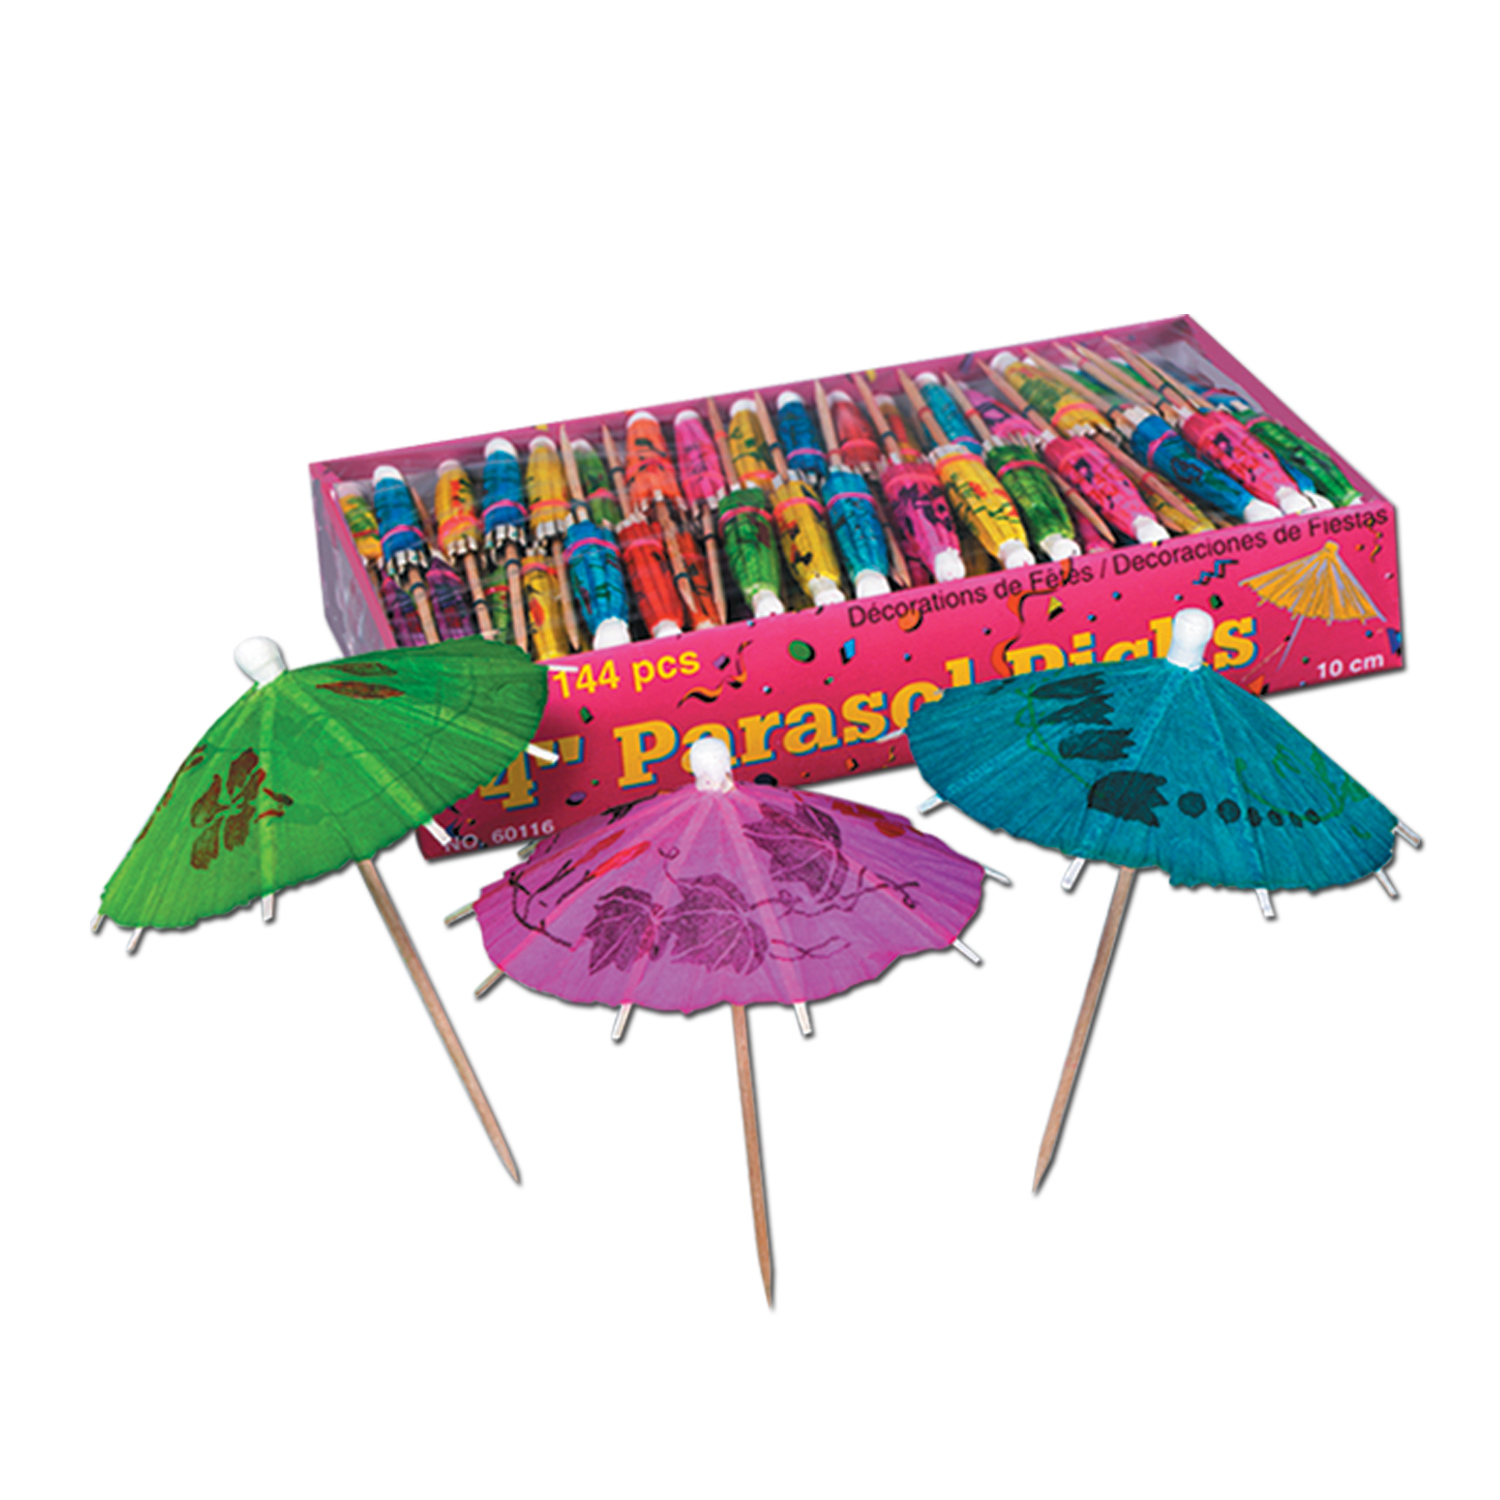 Boxed Party Parasol Picks (pack of 144 pcs) Inexpensive, Wholesale, Umbrella, Parasol, Party Supplies, Luau, Bar Supplies, Hawaiian, Assorted Colors, Neon, Caribbean, New Years Eve, Island, Theme, Beach, Cheap, Budget, Party Favors